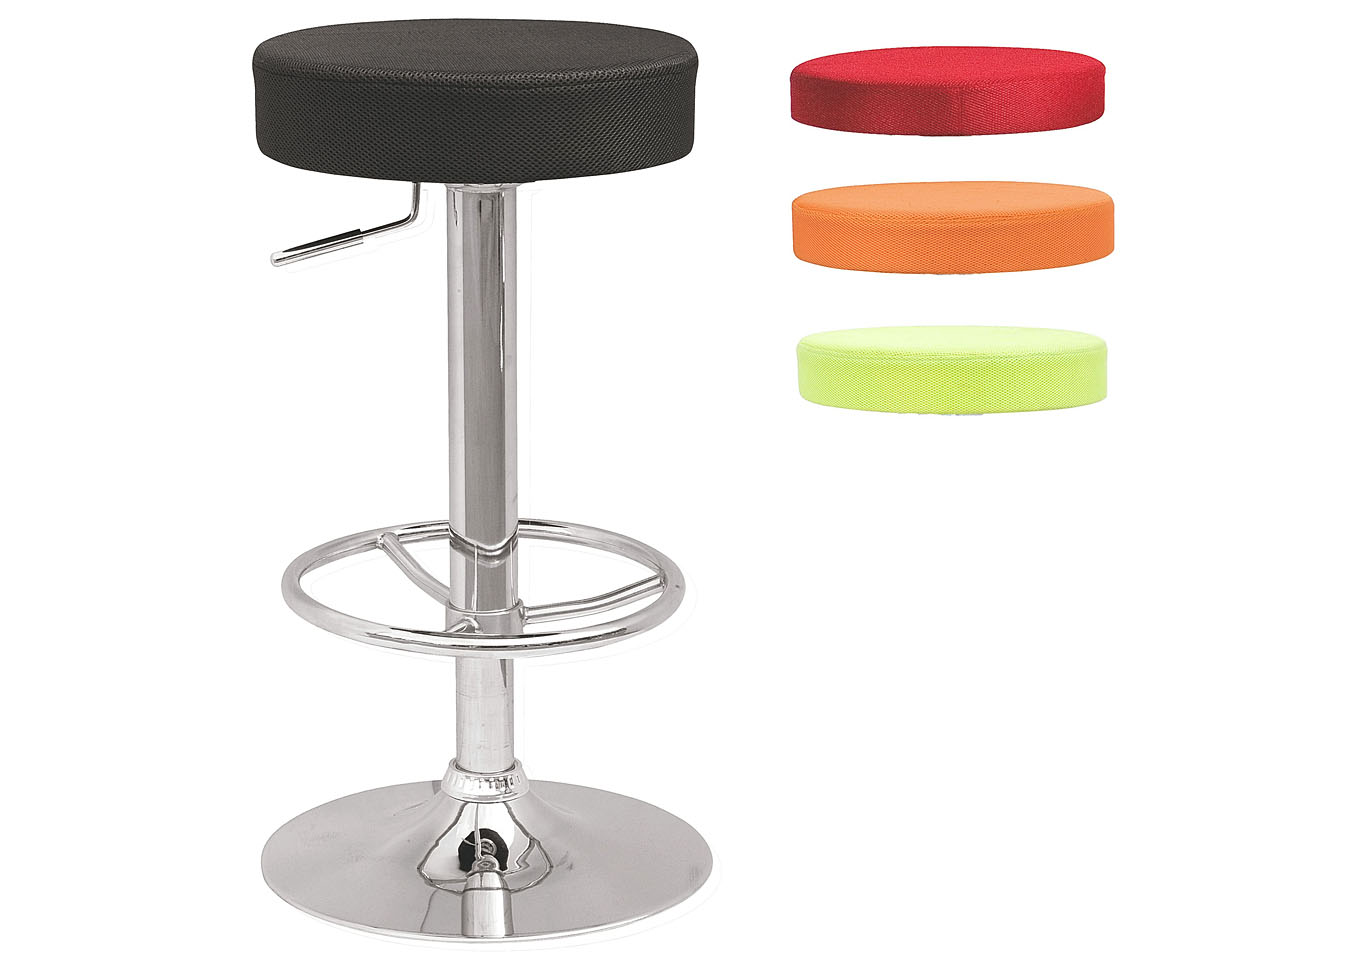 Multicolor Pneumatic-Adjustable Swivel Stool w/ 3 Extra Color Covers,Chintaly Imports